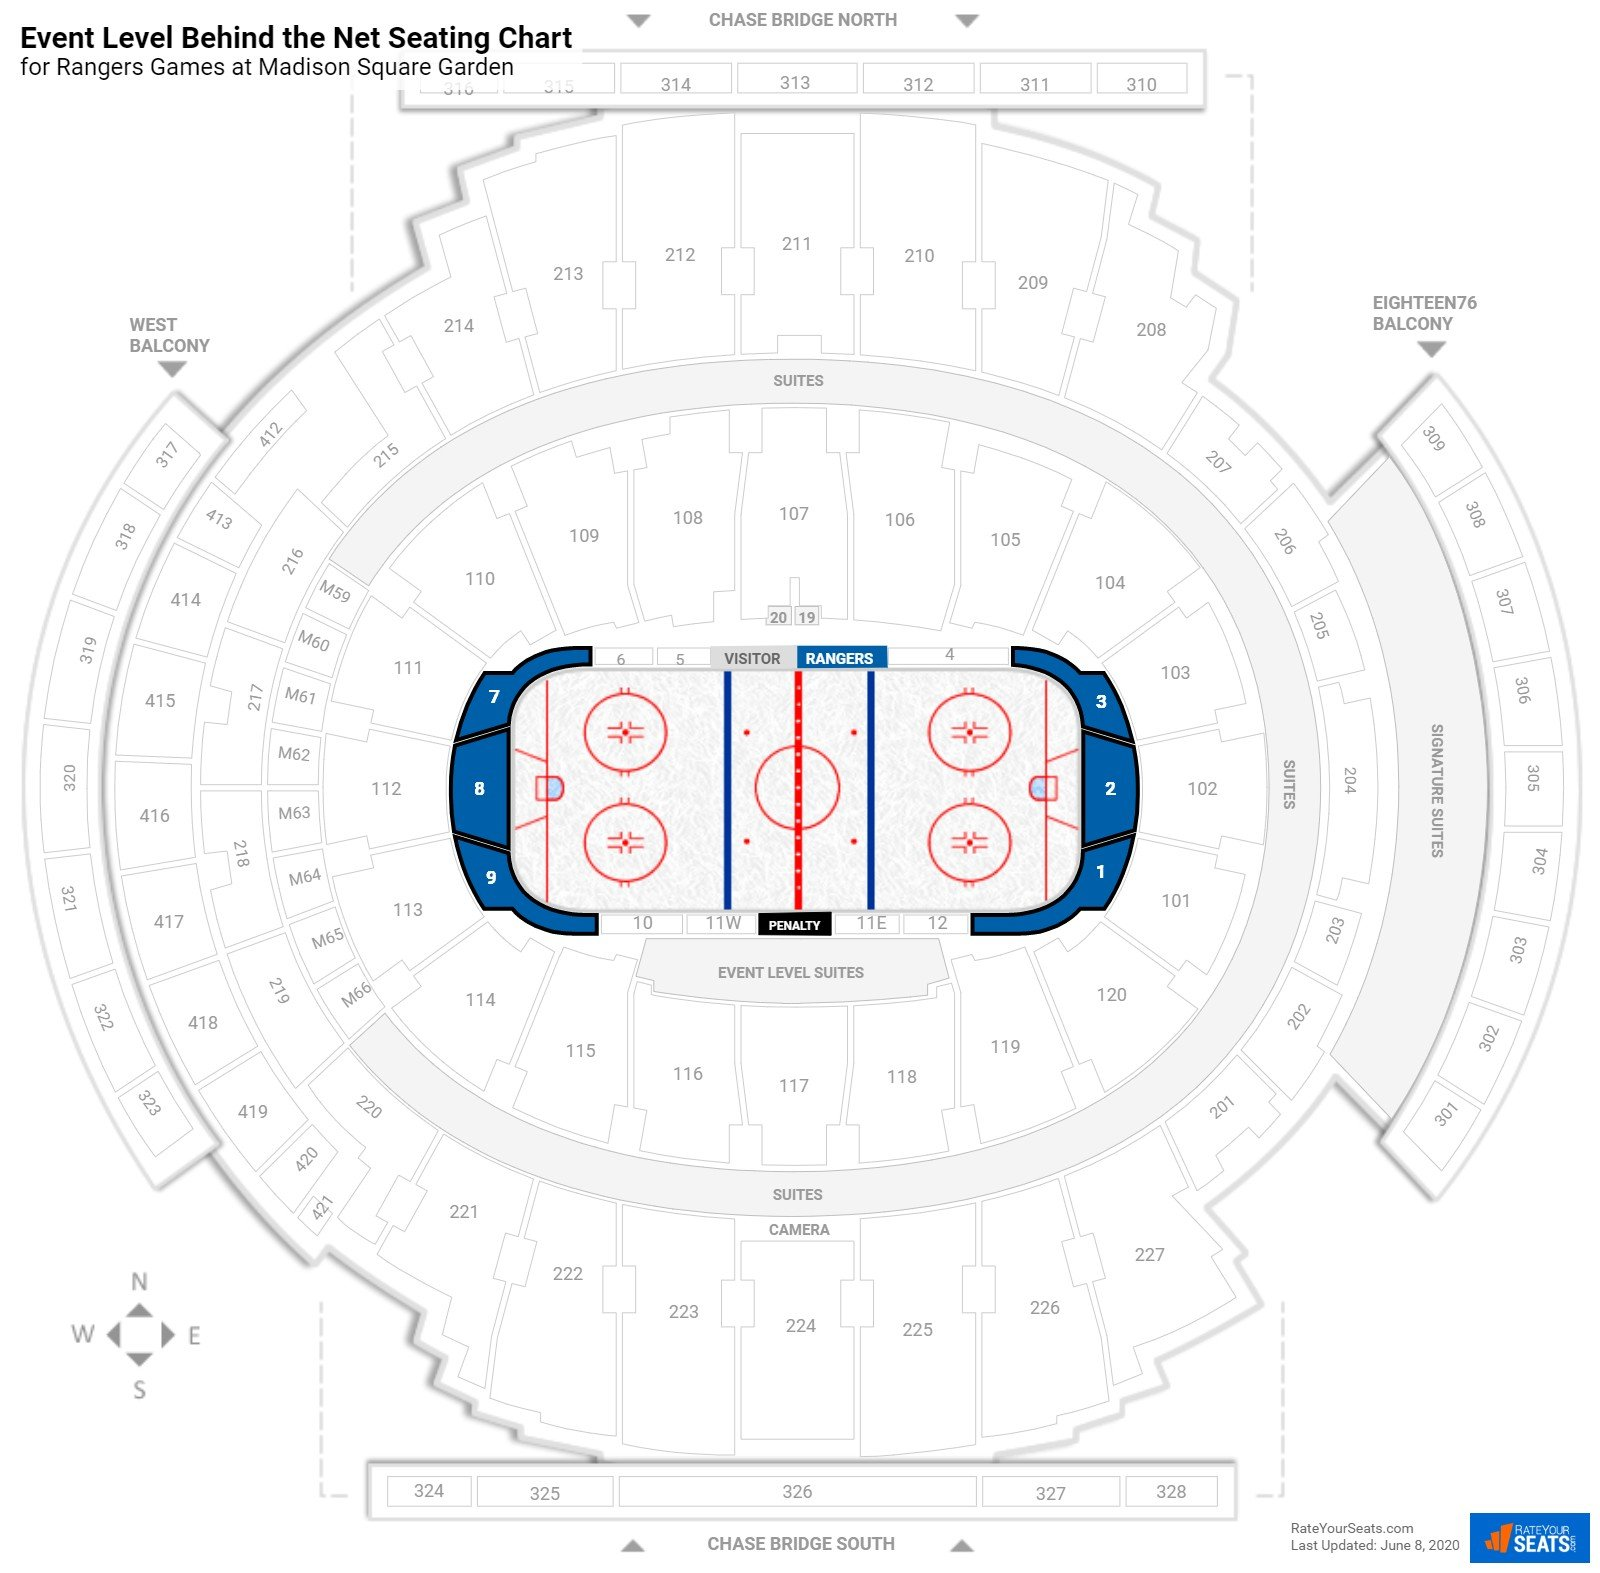 Madison Square Garden Event Level Behind the Net seating chart